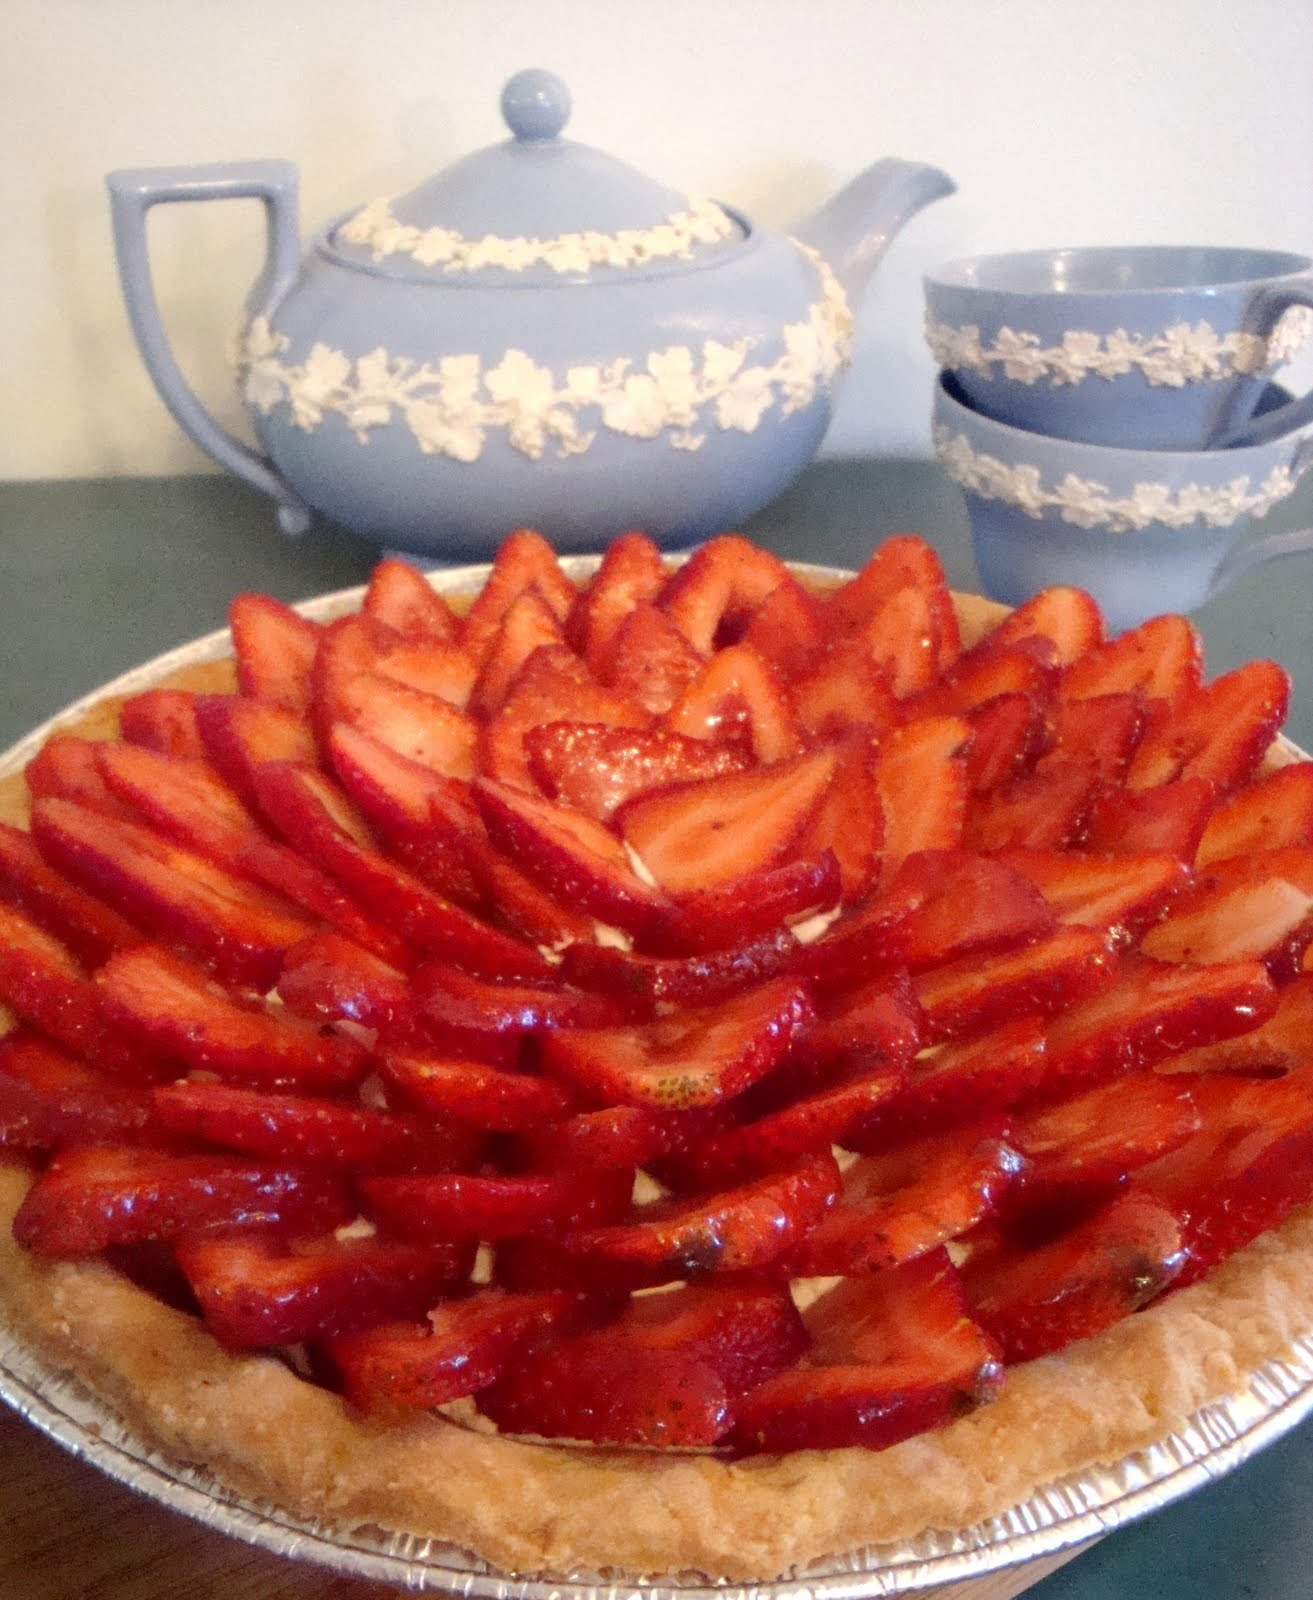 Sweet Lavender Bake Shoppe: fresh strawberry pie...